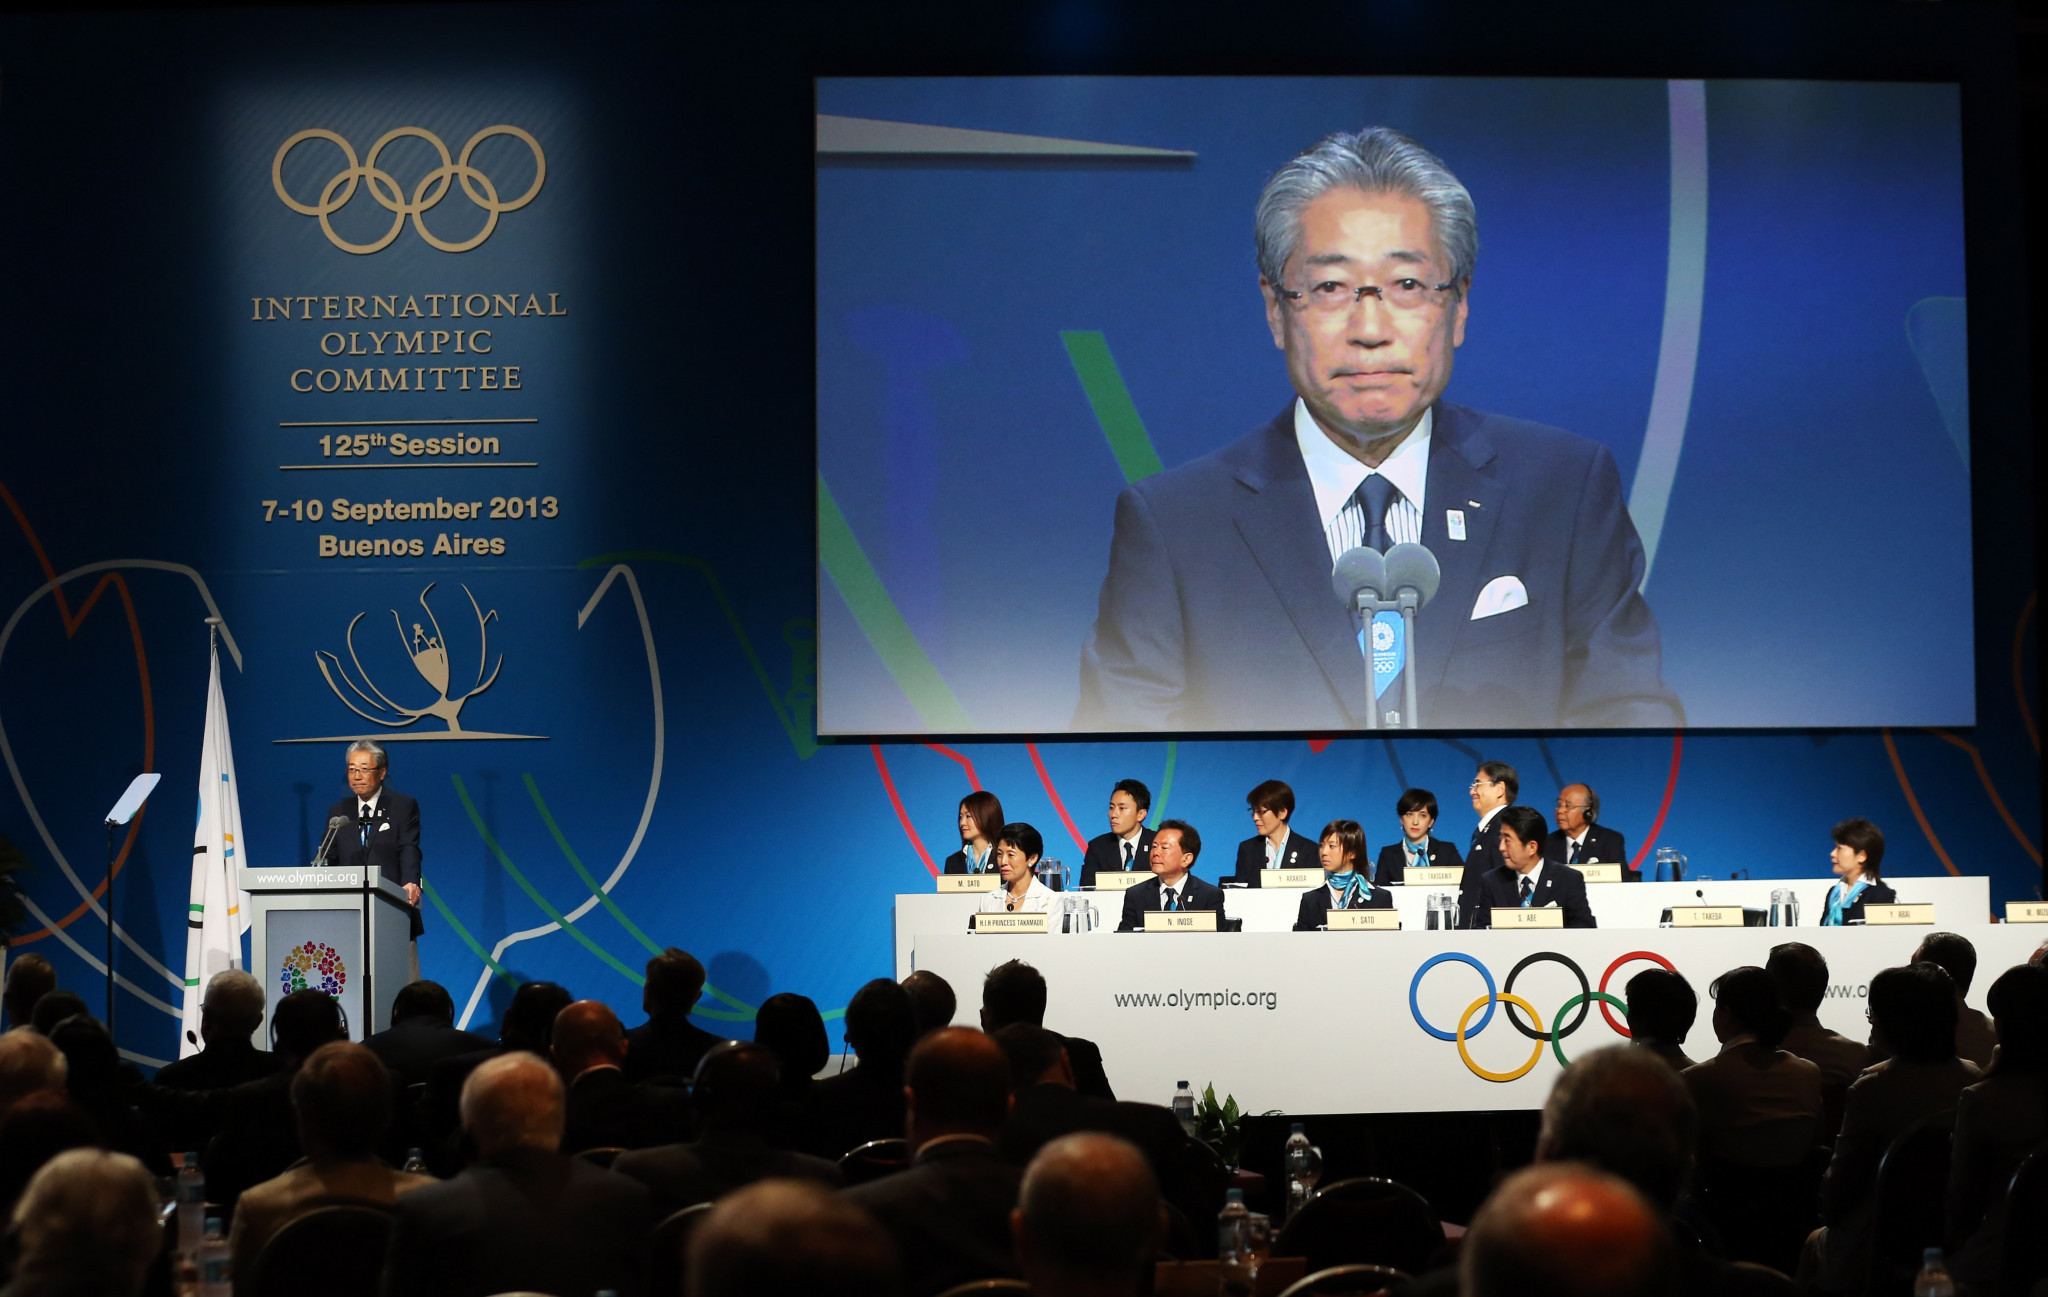 Tsunekazu Takeda played a leading role in Tokyo's successful bid for the 2020 Olympic and Paralympic Games ©Getty Images